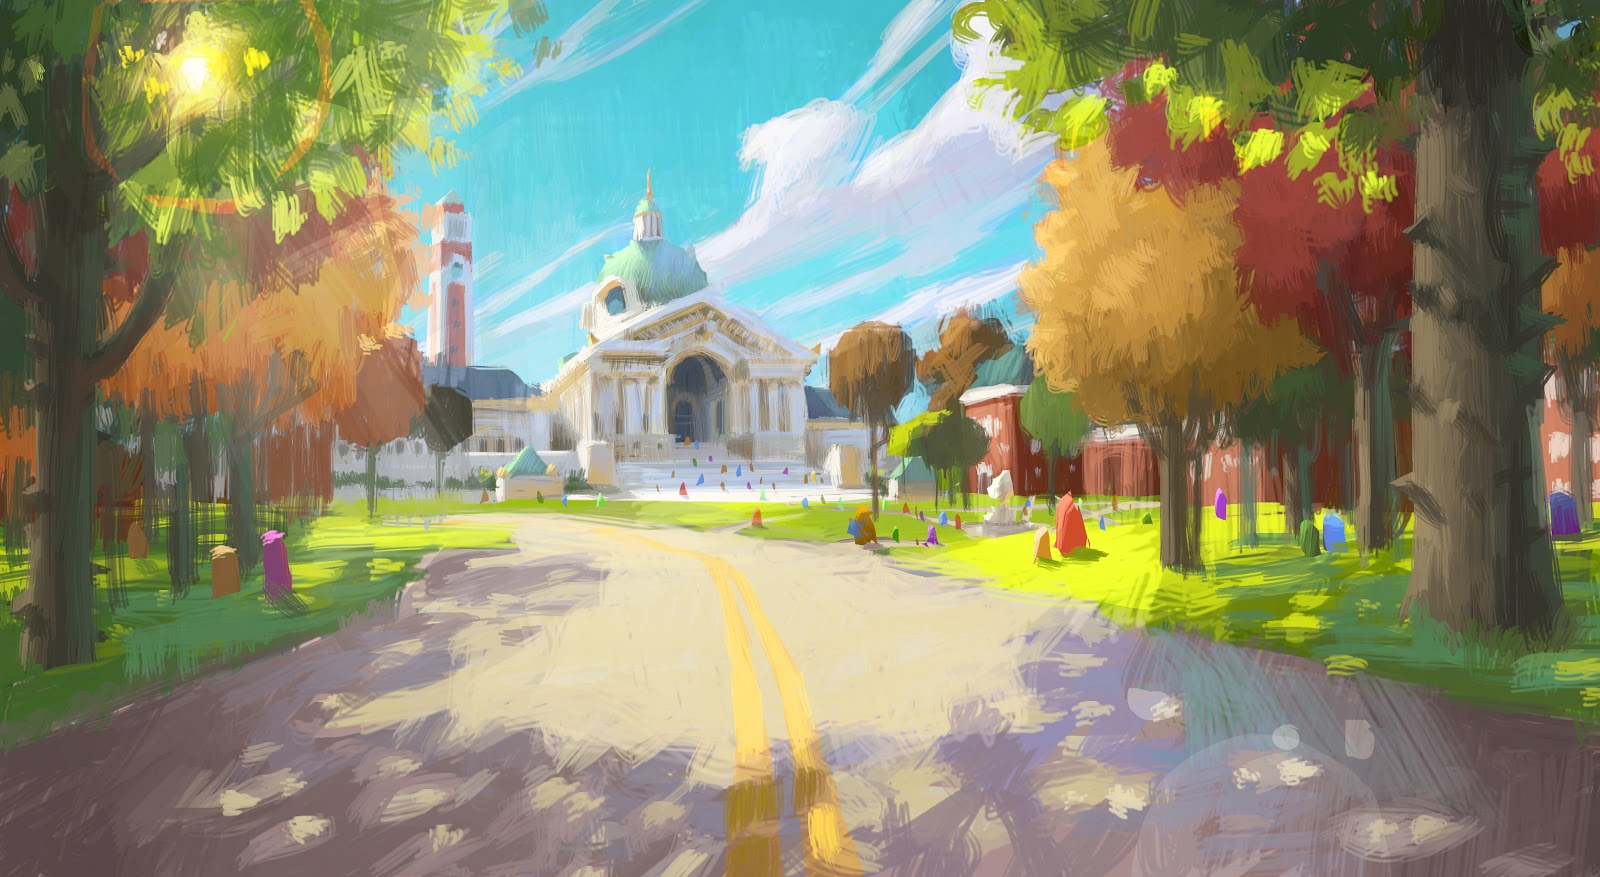 pixar planet disney monstres academy artwork